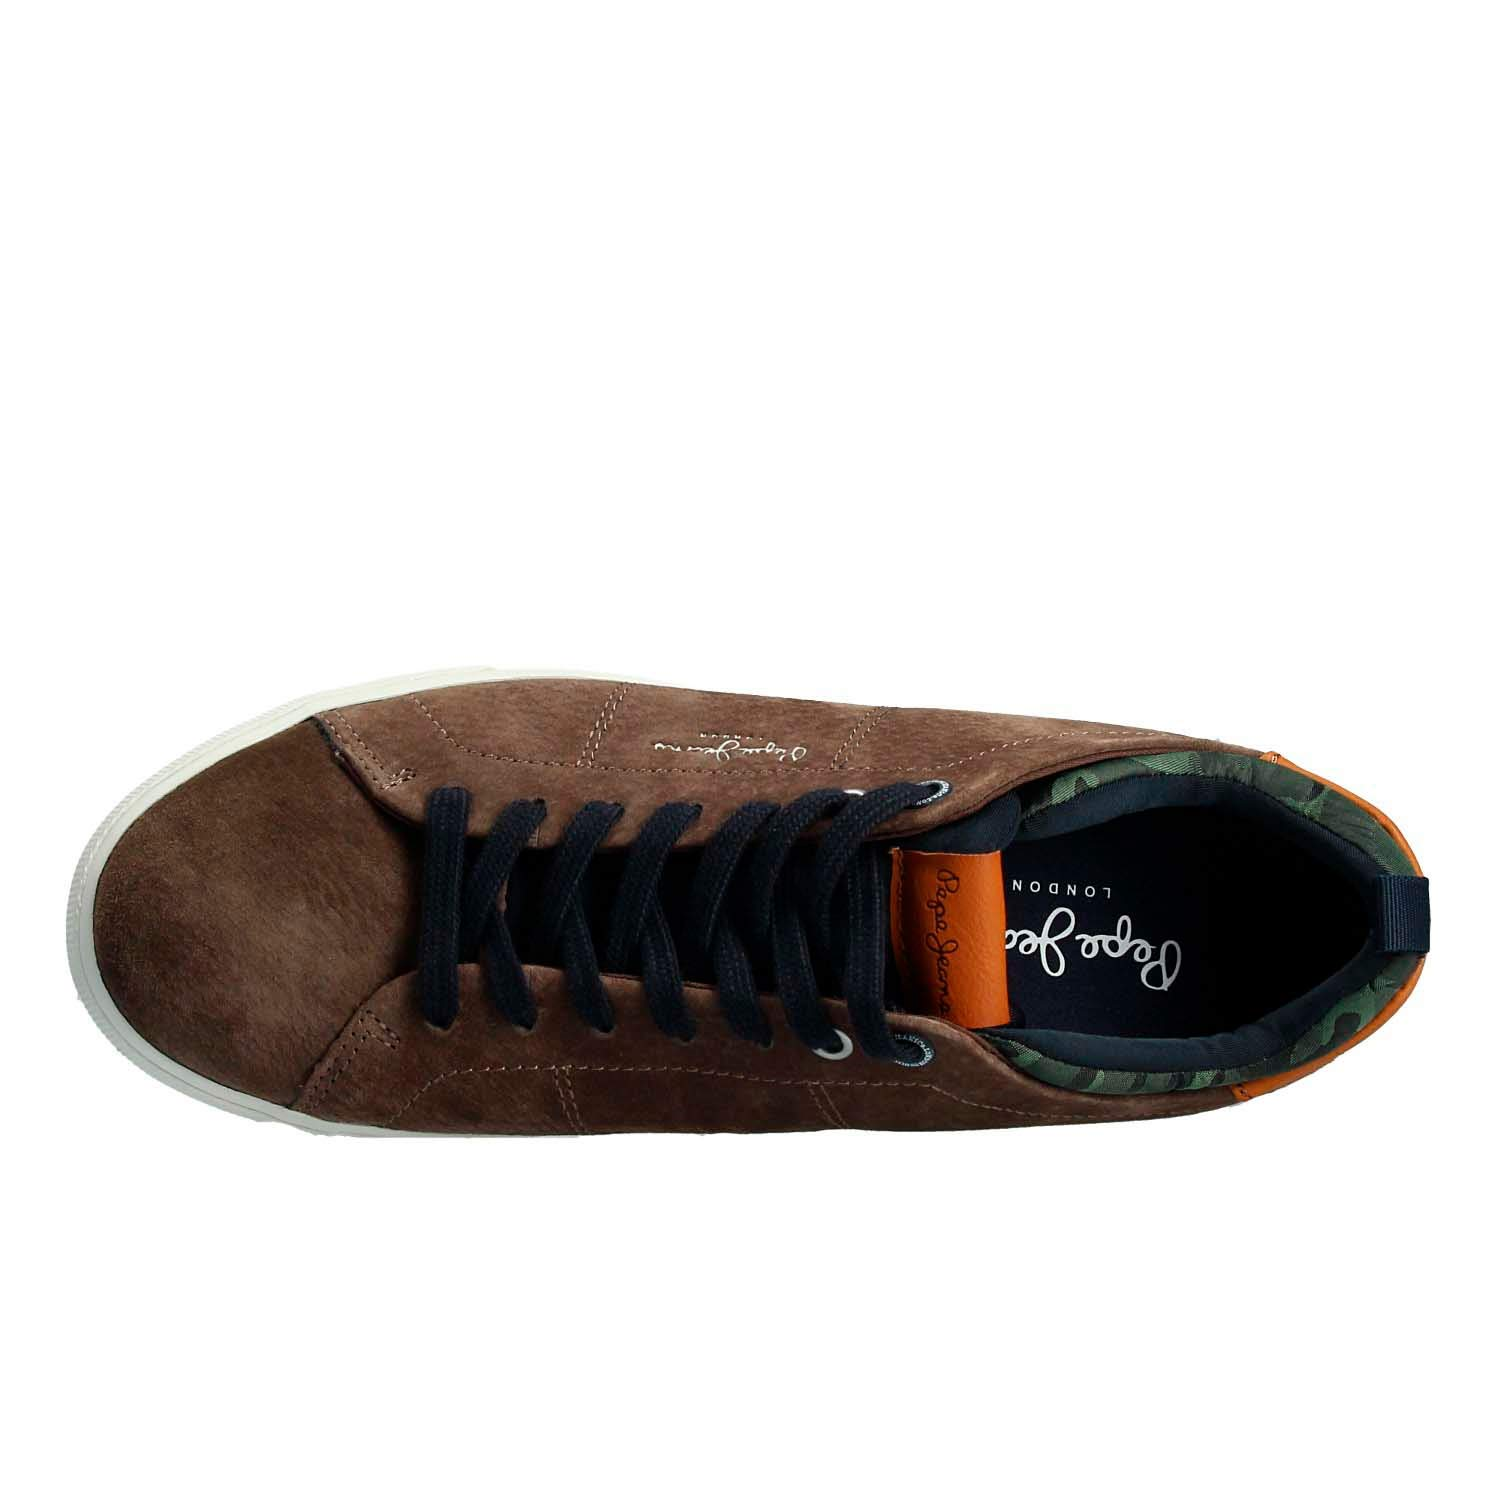 Pepe Pepe Pepe Jeans PMS30502 Marron - B07FW2G9YM - Chaussons 156310